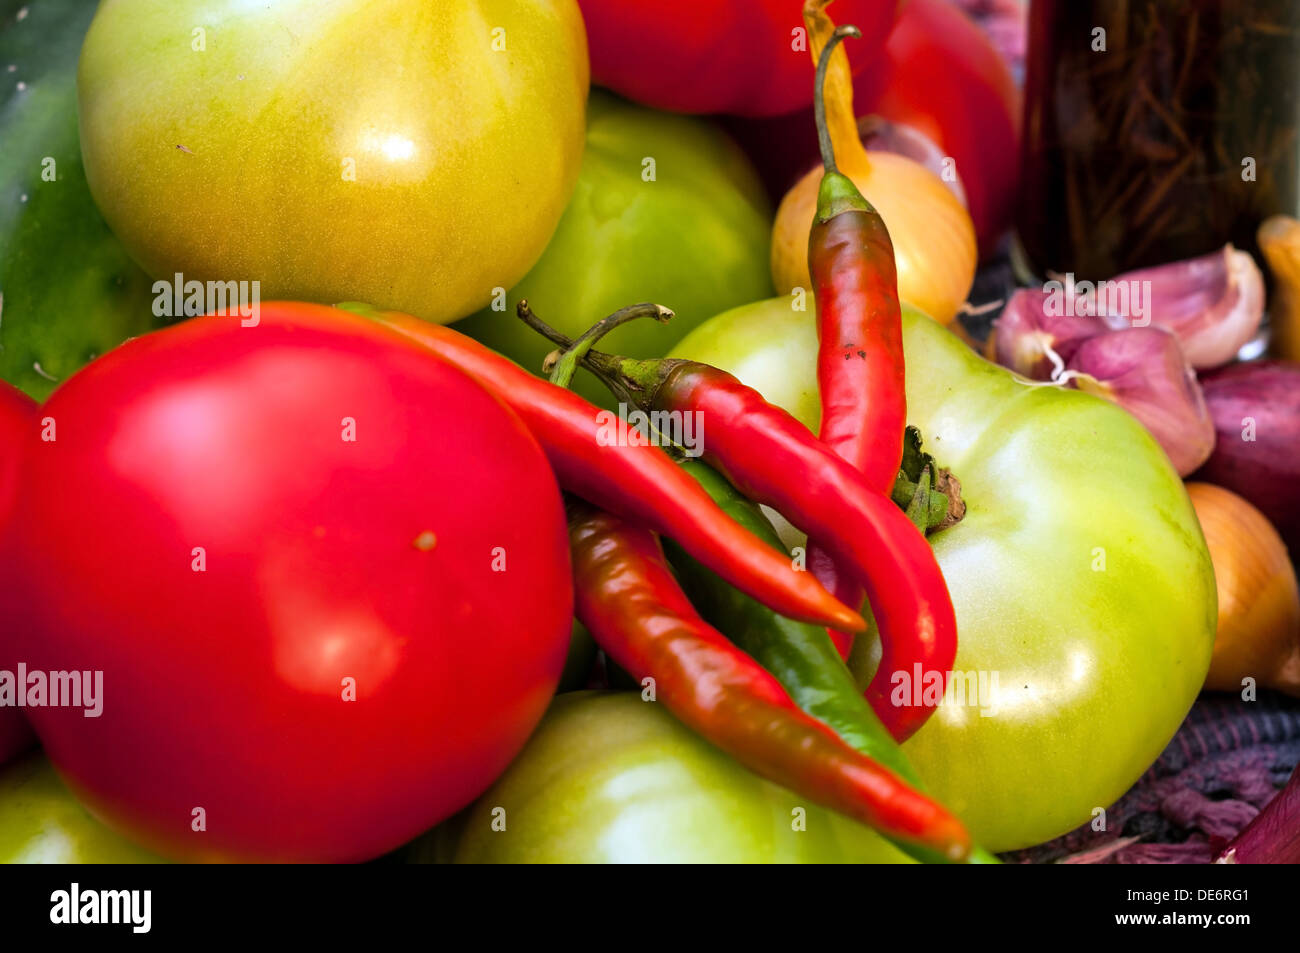 Ingredients for pickles including tomatoes (red and green) cucumbers, hot peppers, onions (red and white), garlic - Stock Image